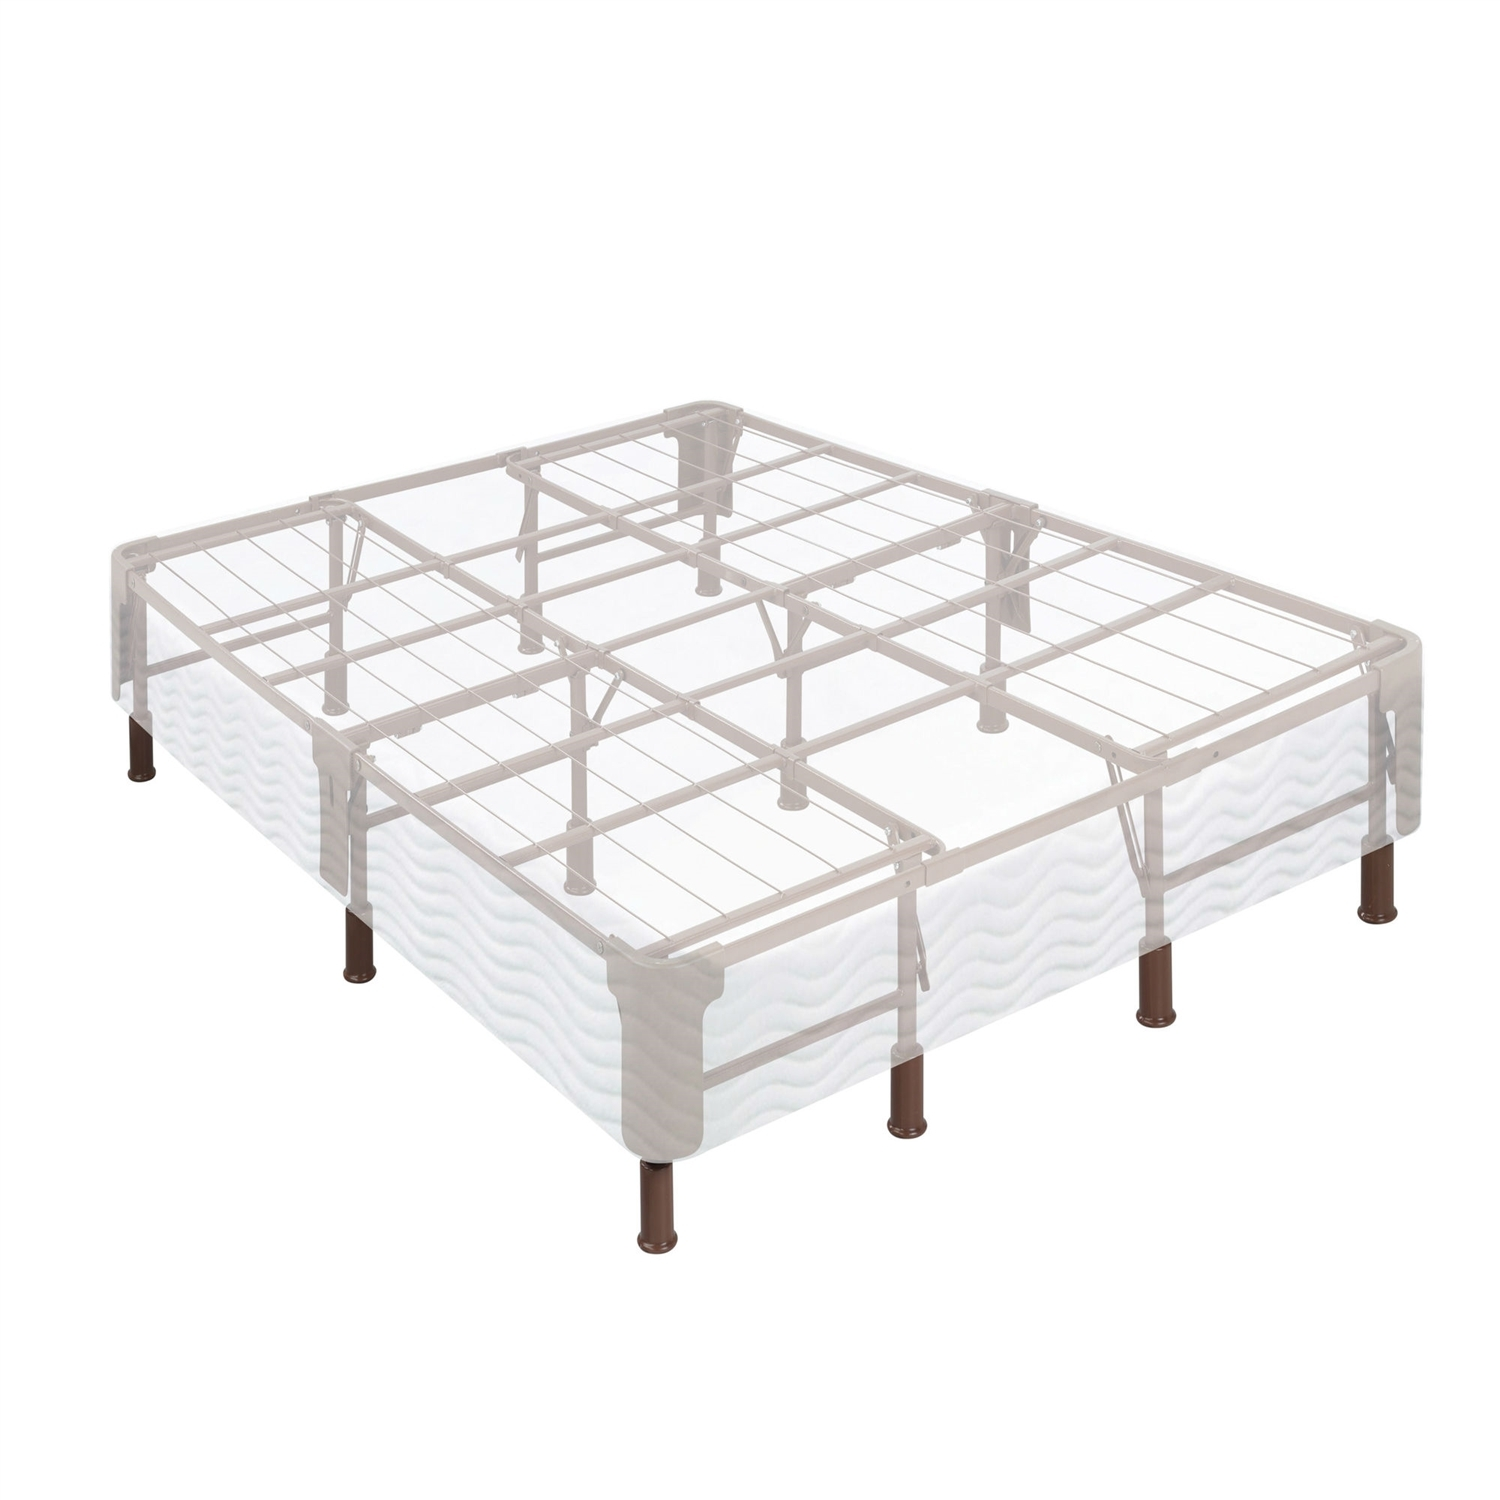 Bed Frames And Box Springs